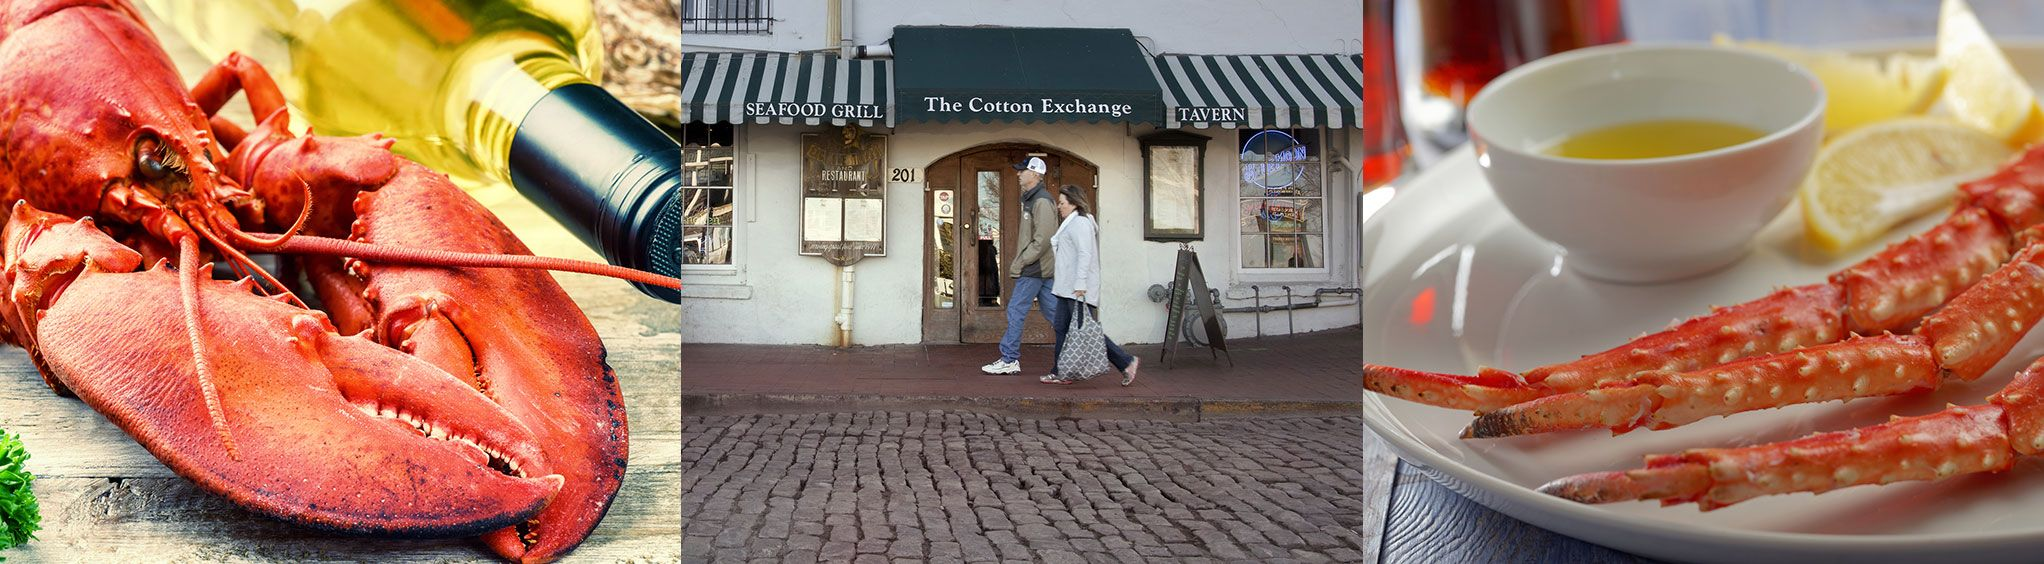 Cotton Exchange Tavern & Restaurant